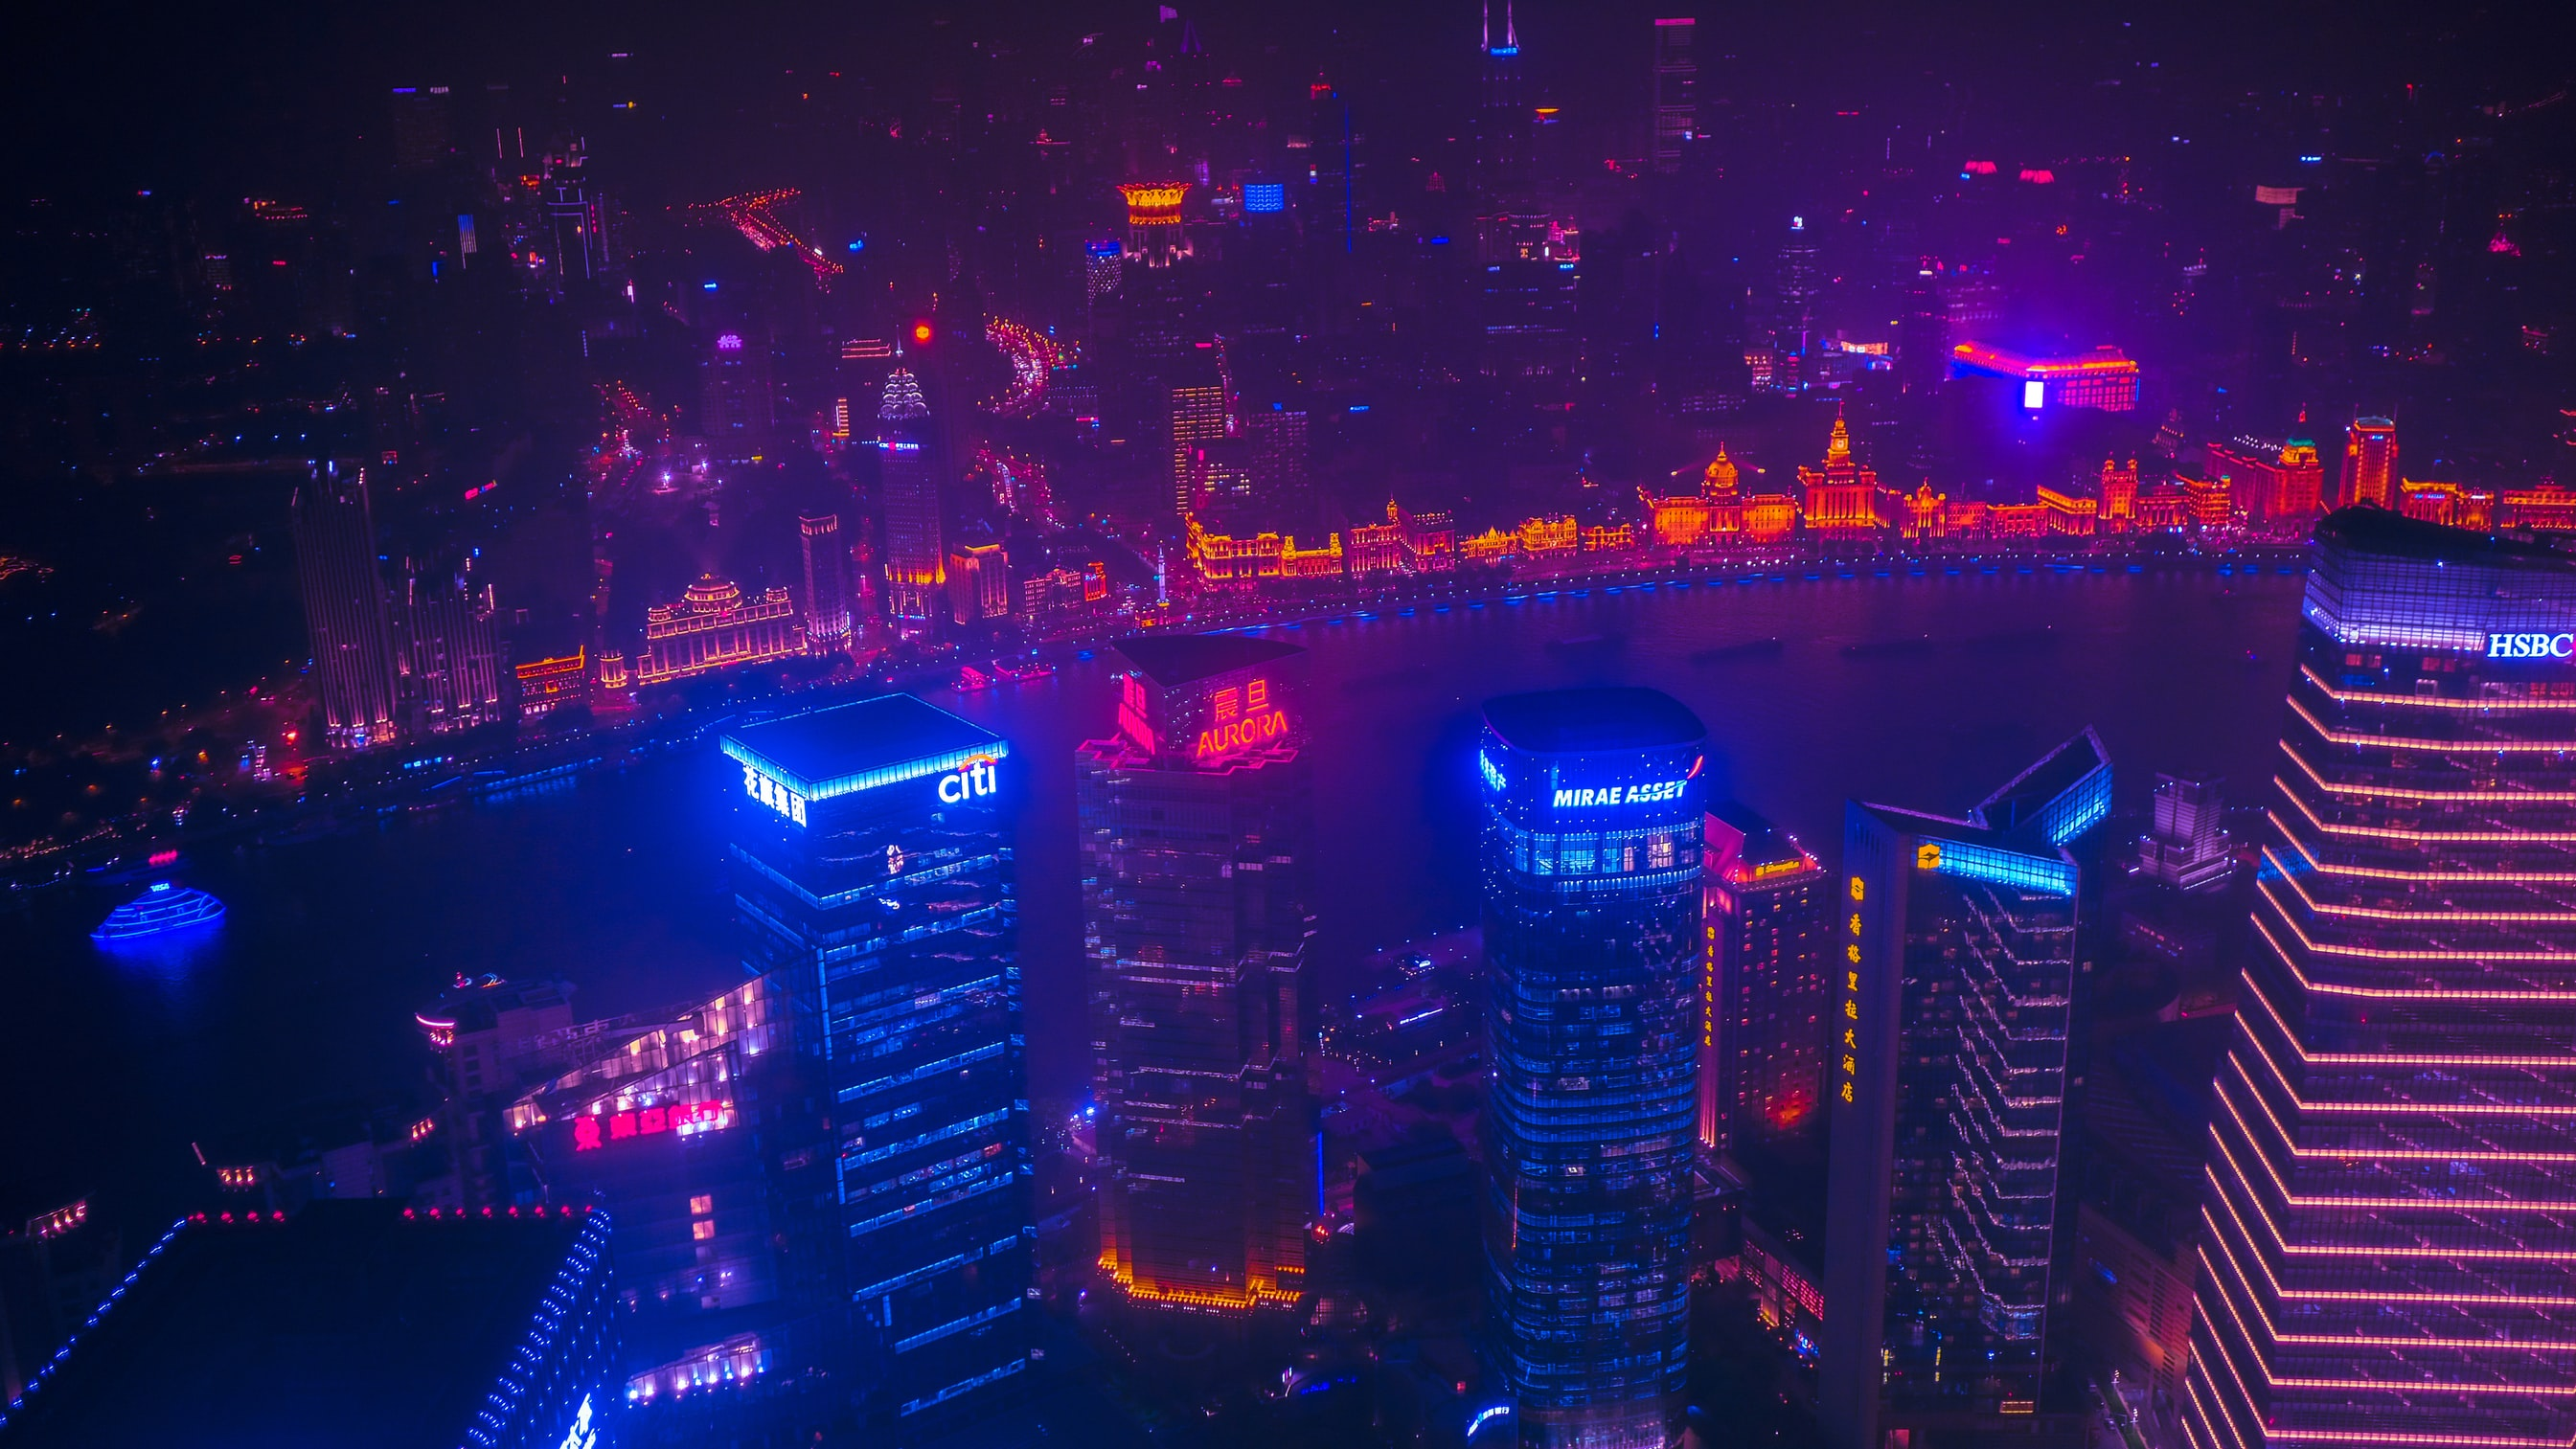 Osore Shanghai Sneak Peek and Unsplash - Cyberpunk Lightroom Presets